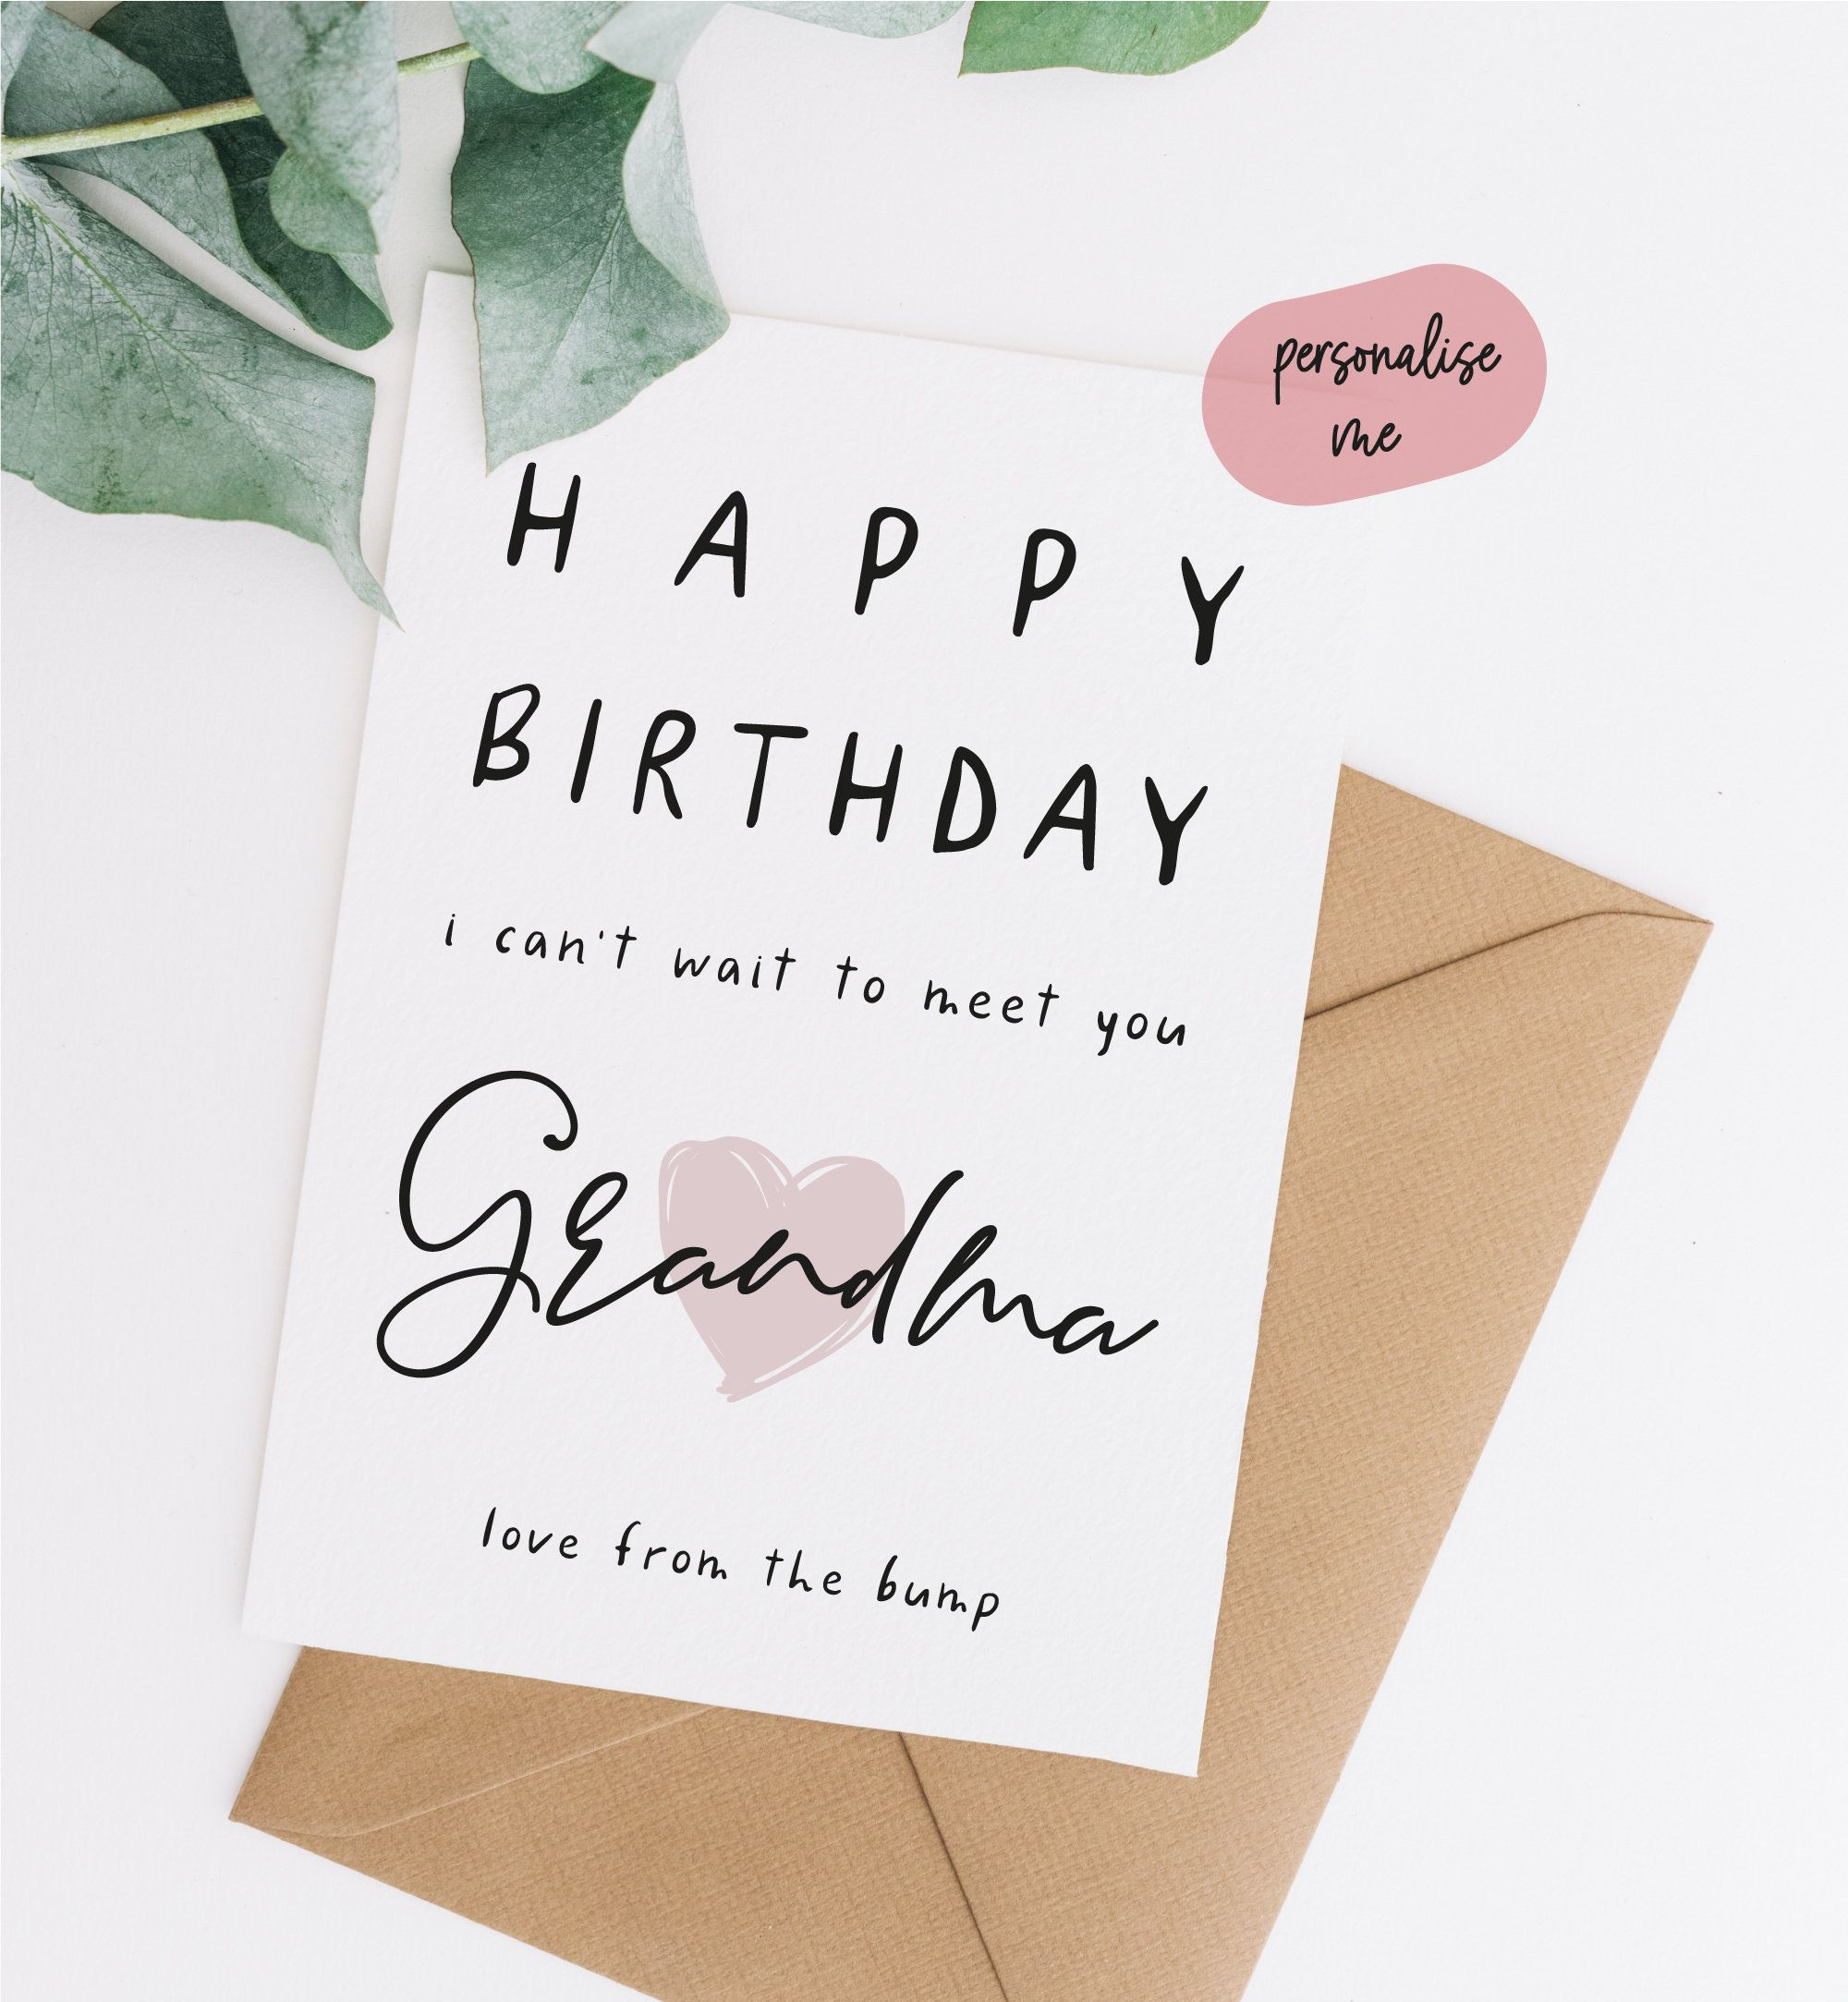 Birthday Card From The Bump Birthday Card From The Bump To Grandma Birthday Card For Gran Birth Happy Birthday Daddy Card Daddy Birthday Card Birthday Cards